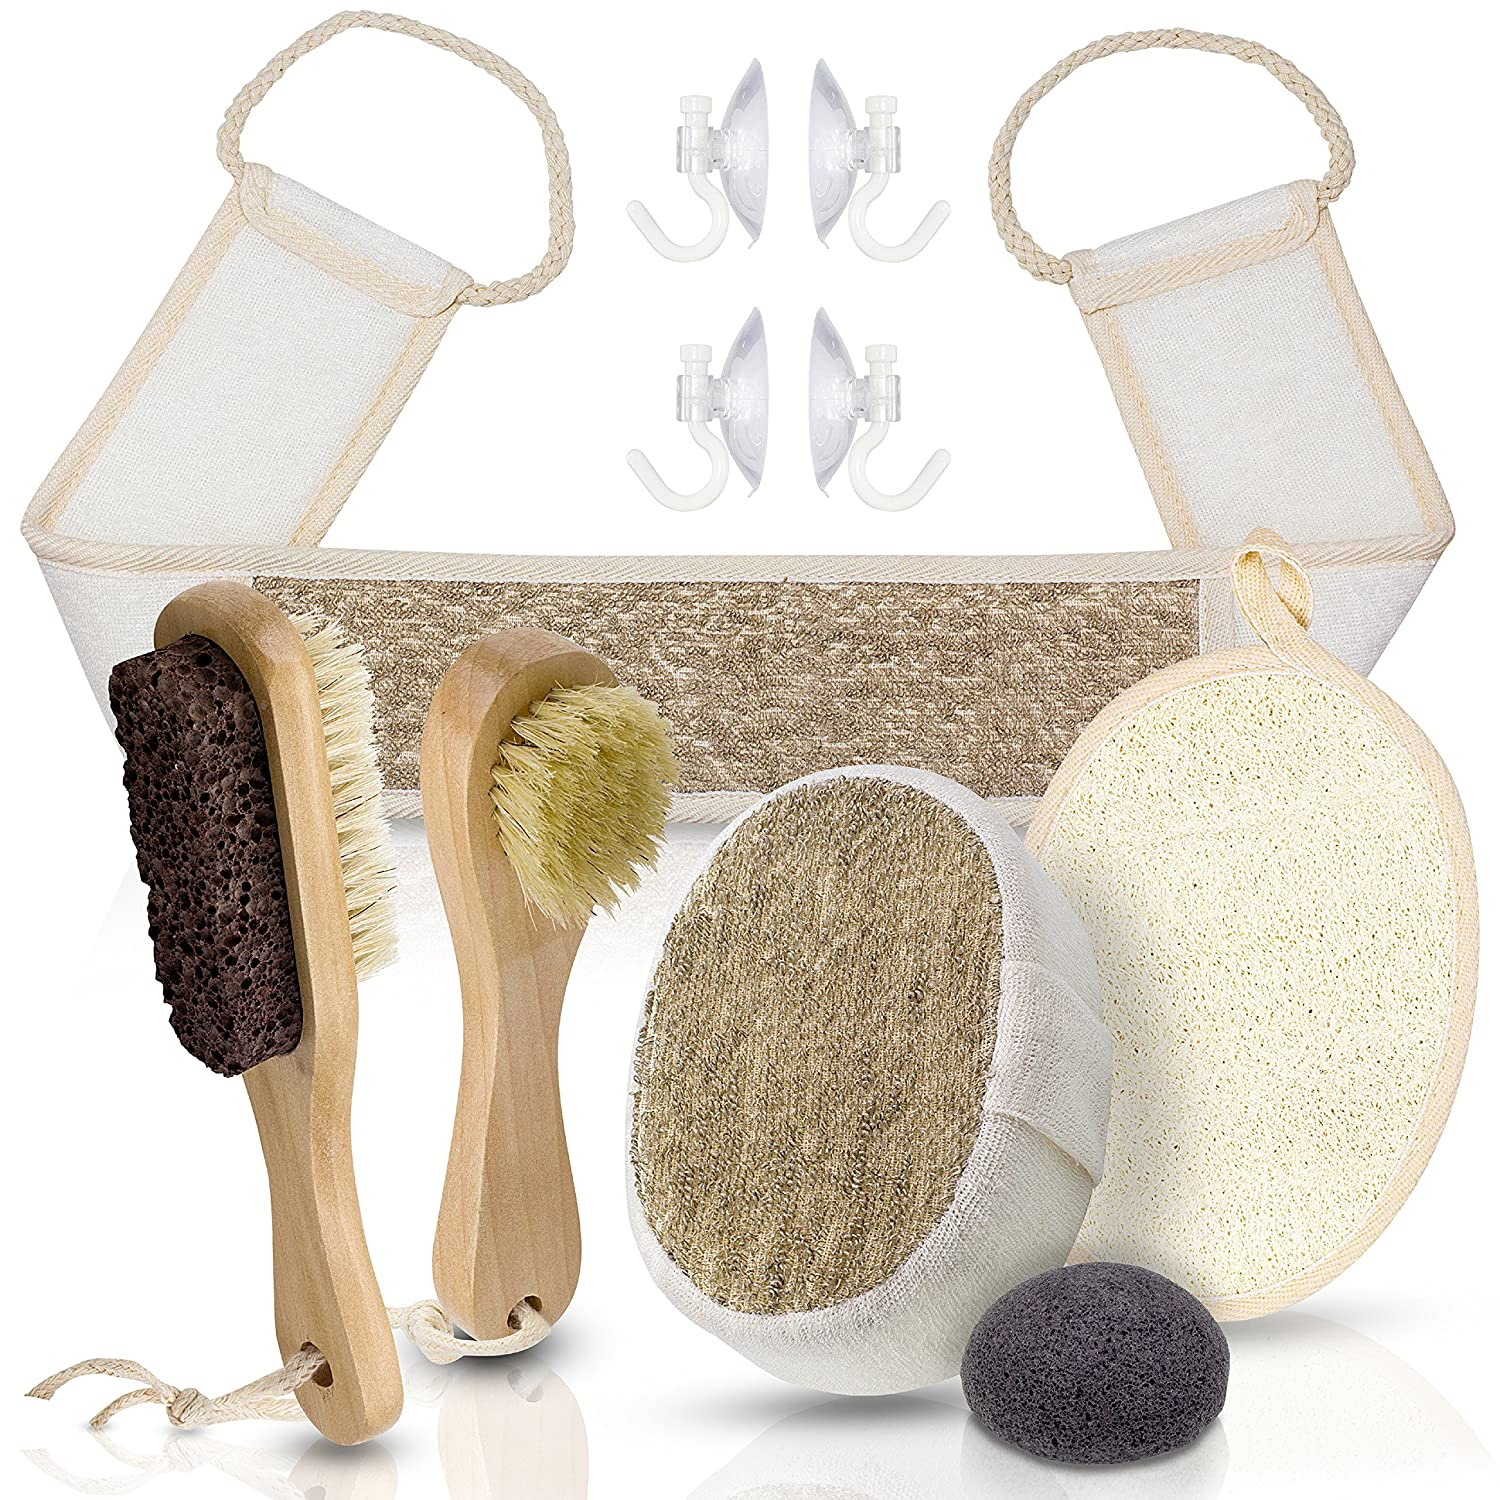 Home Spa Set - Brush, Scrub, Exfoliate, Wash - Face and Body with Konjac Sponge, Loofah, Back and Foot Scrubbers, Facial Brush, Pumice Stone and Body Sponge Comes with Hooks and Mesh Storage Bag. Healthy Home Helper